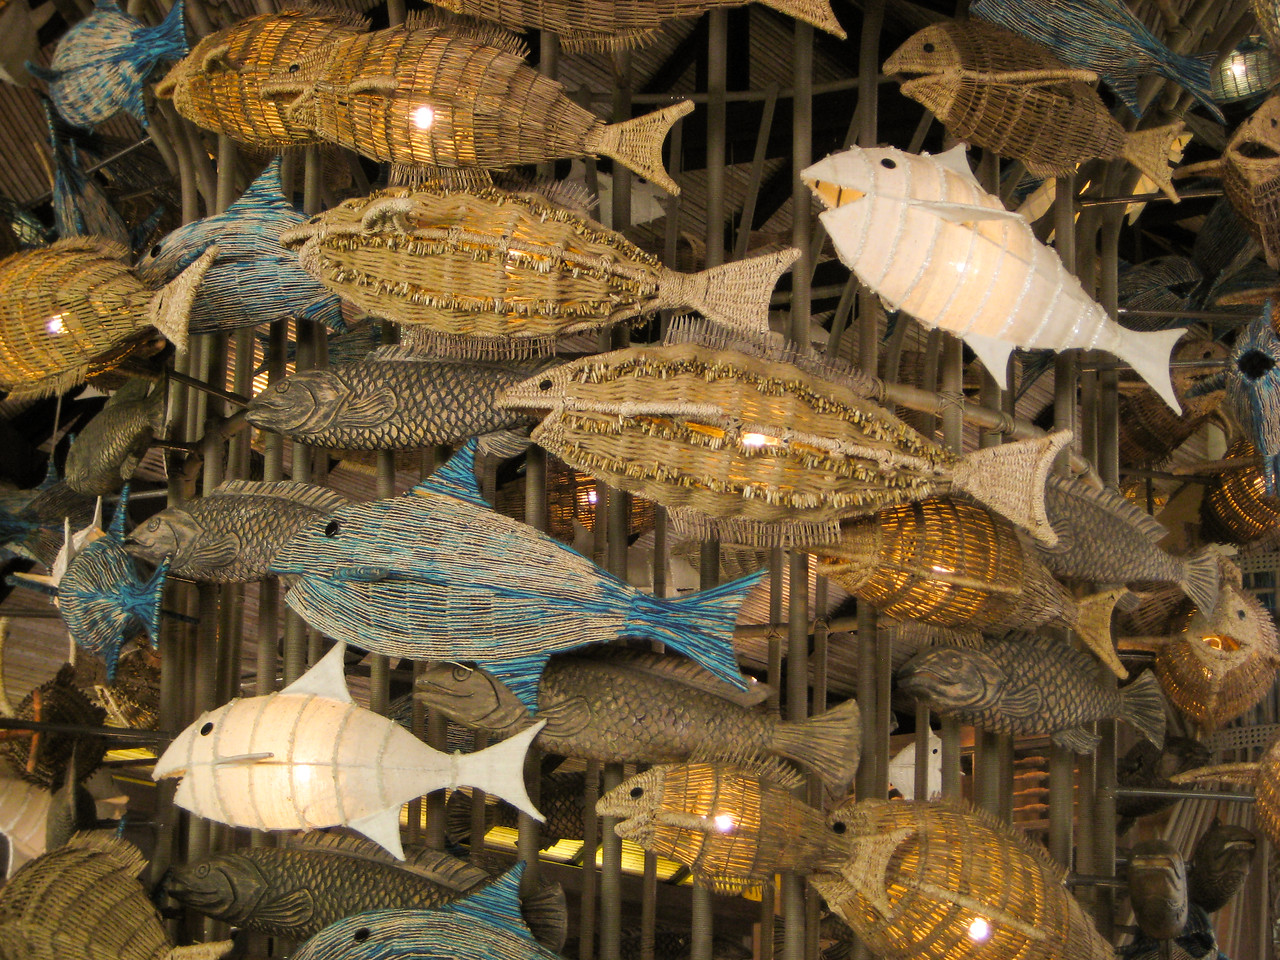 Fishy decorations